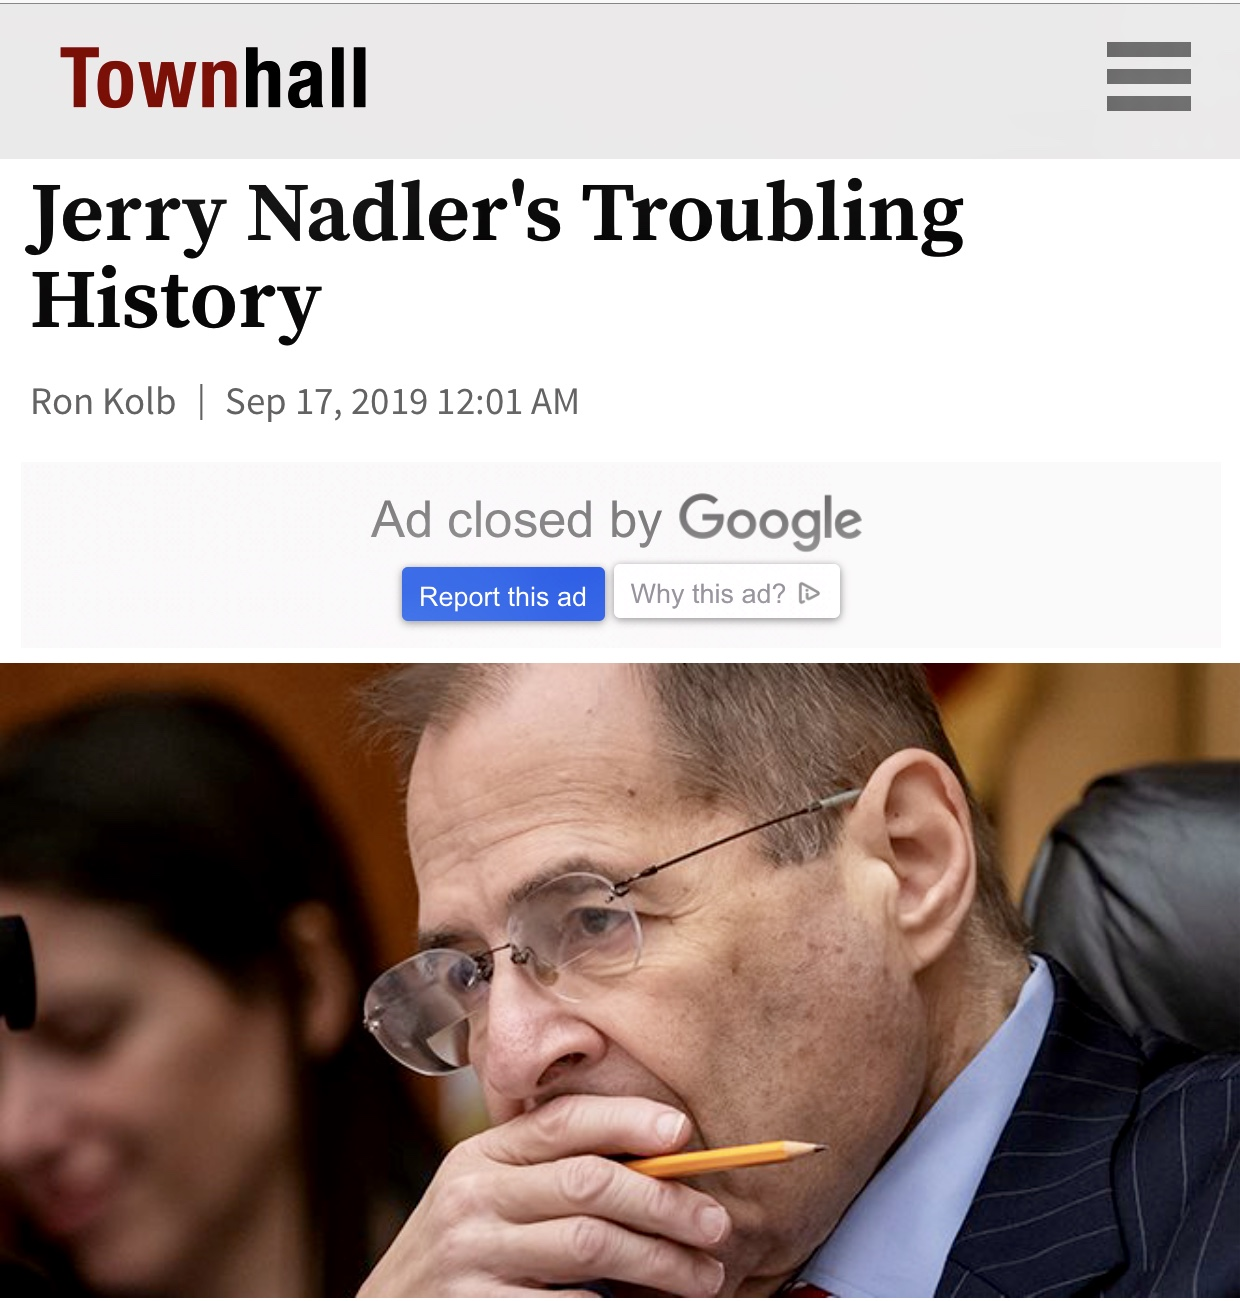 Jerry Nadler's Troubling History